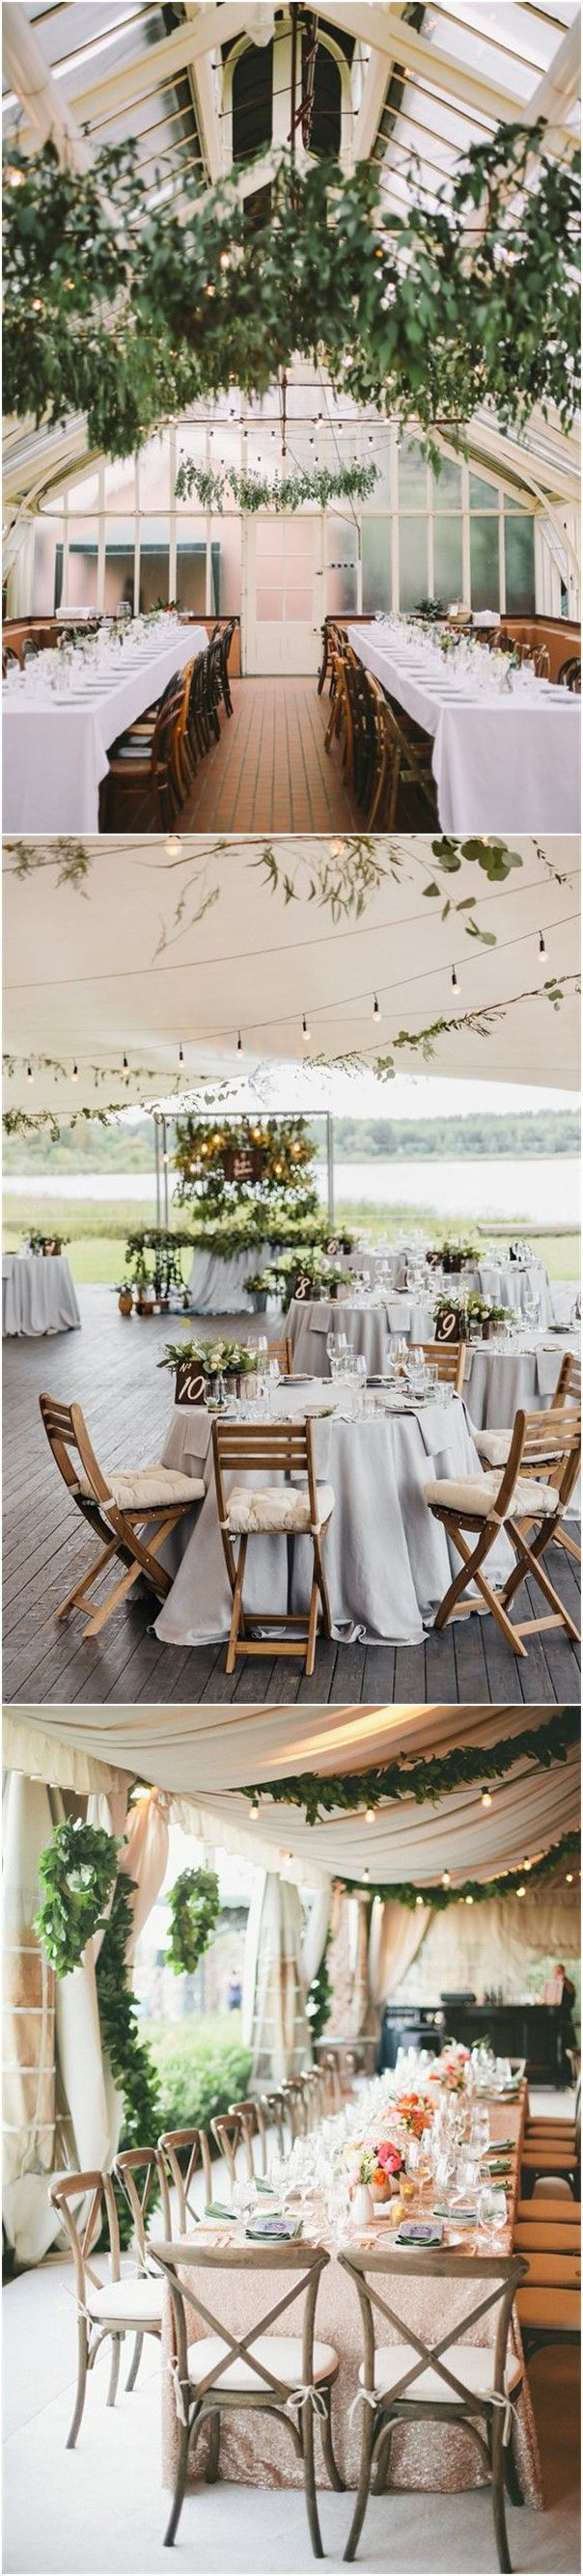 Uncategorized wedding style decor small home garden wedding ideas youtube - Best 25 Party Tent Decorations Ideas On Pinterest Tent Reception White Paper Lanterns And Wedding Pom Poms